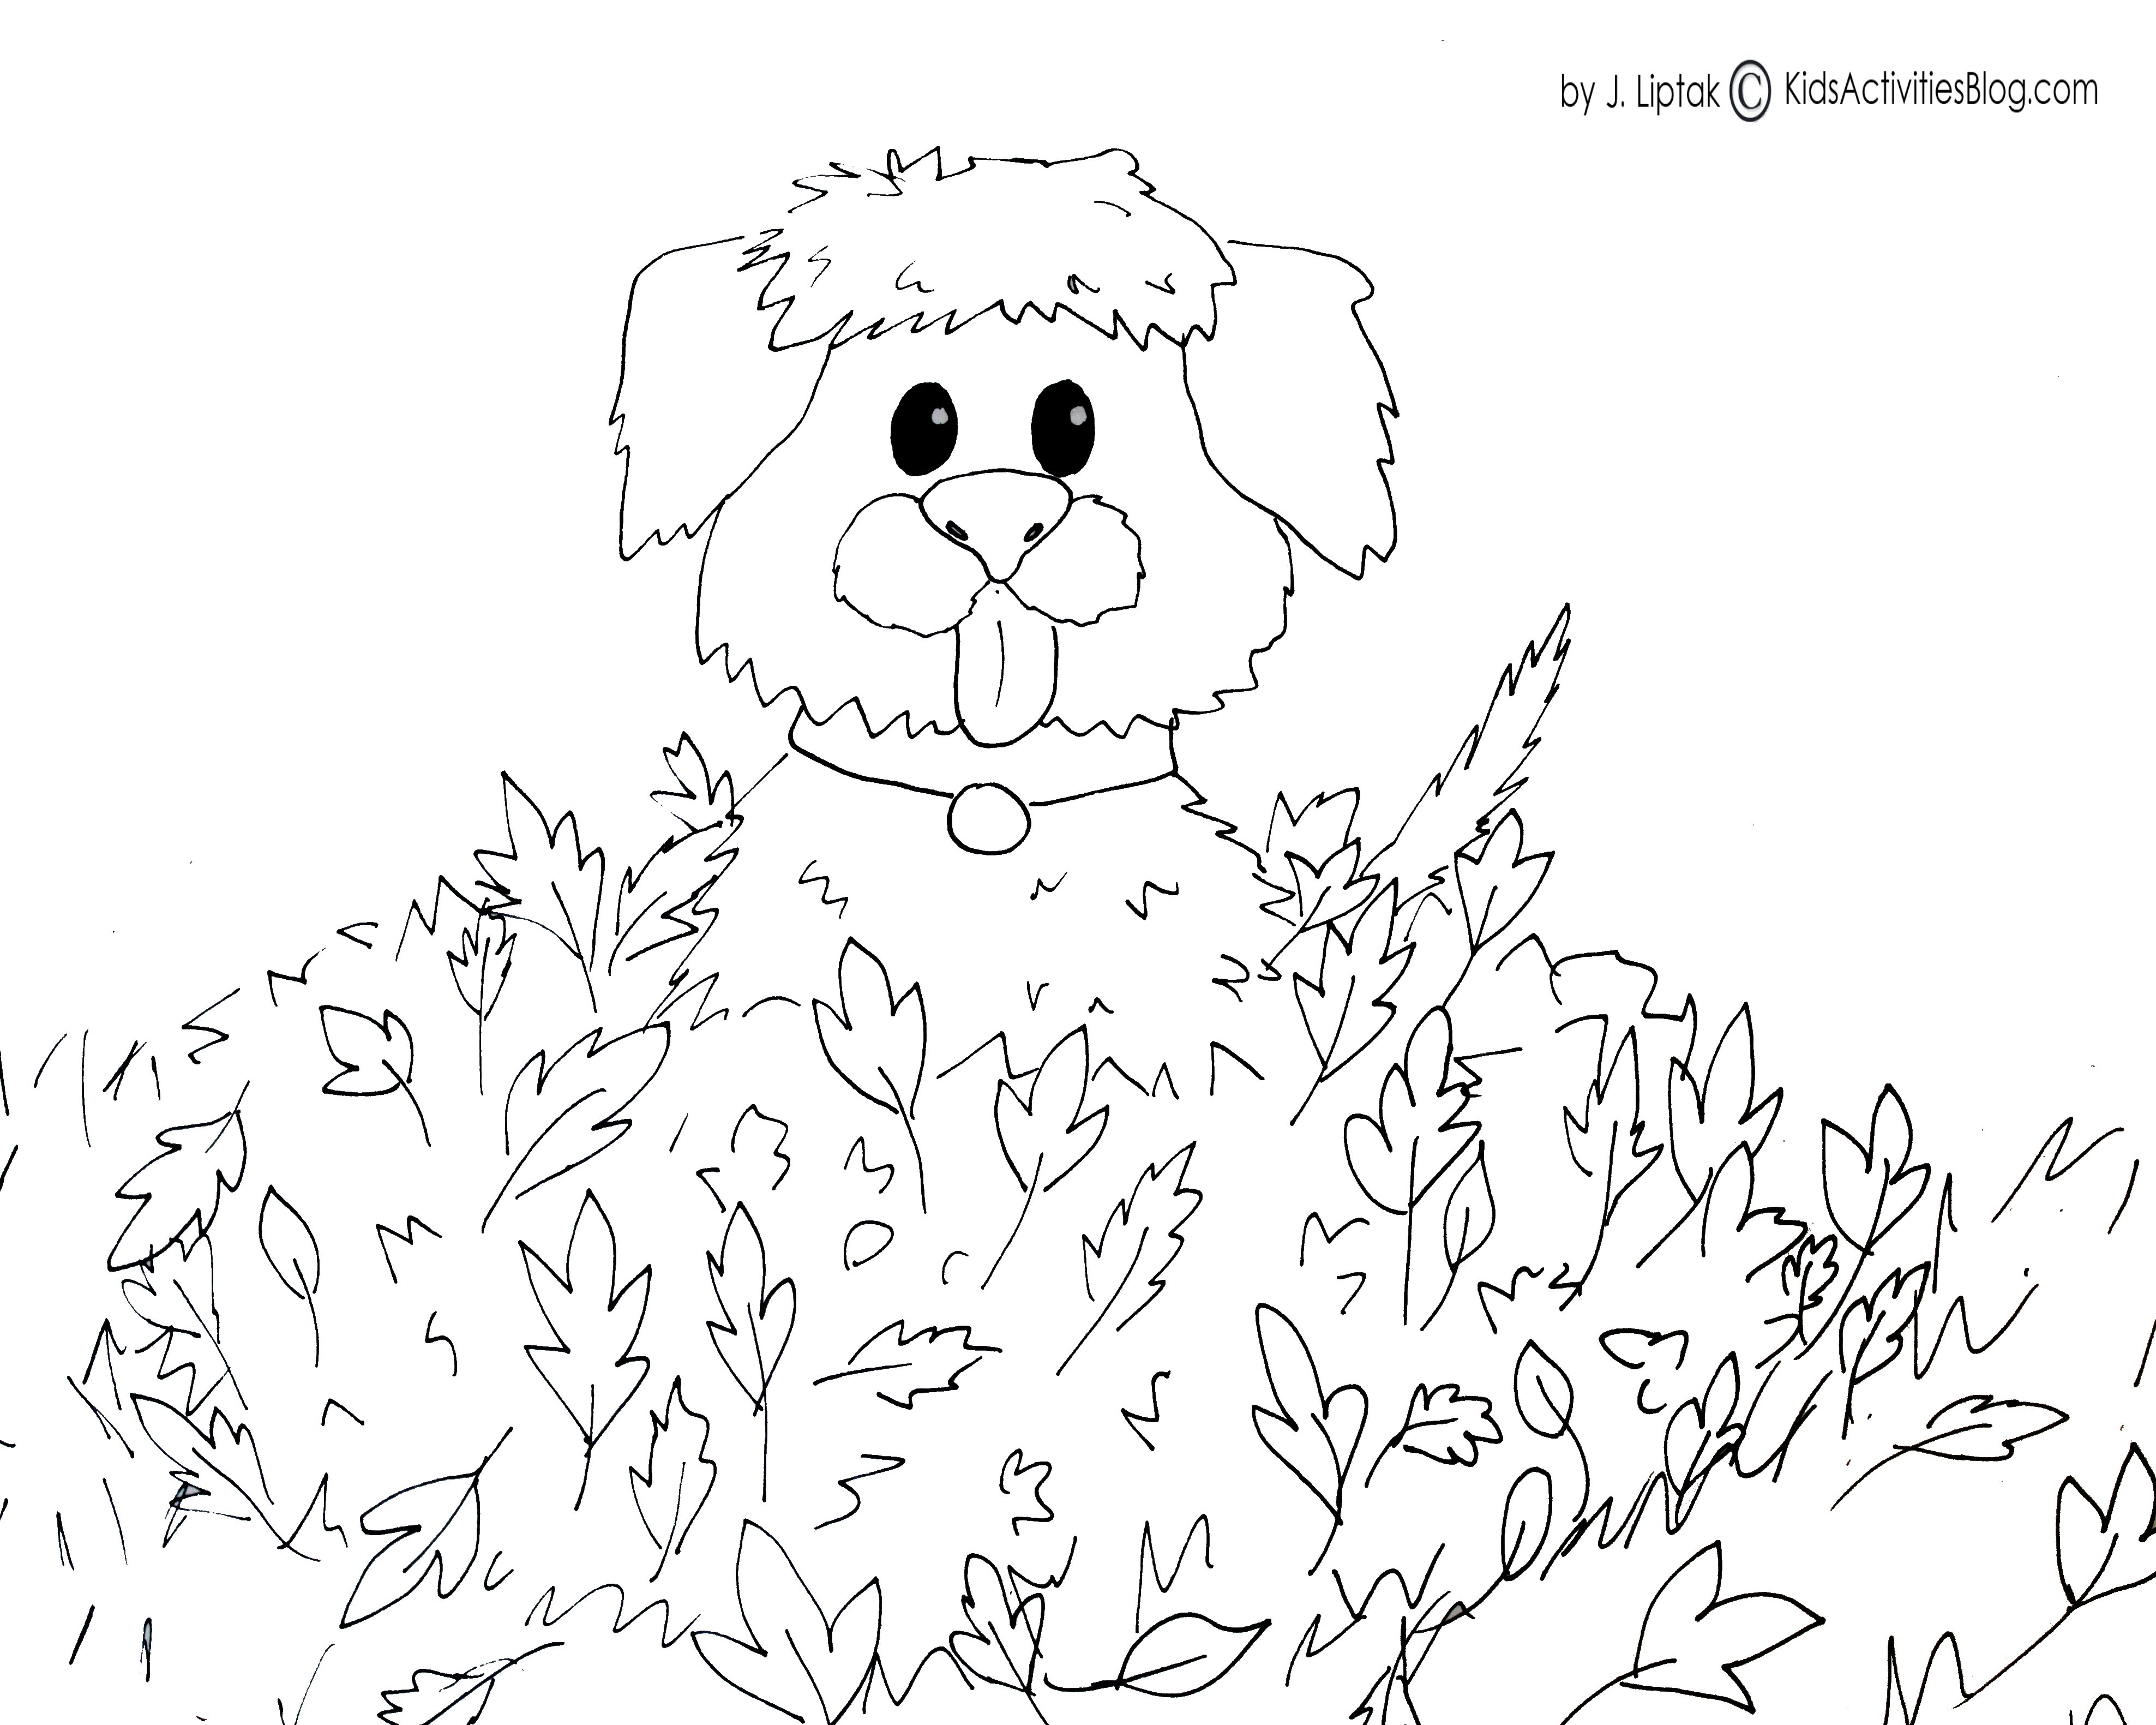 Colouring Sheets For Kindergarten Printable Coloring Pages Kids New in addition Color By Number Island Drawing Coloring Worksheets Color By Number likewise  also Printable Coloring Worksheets Coloring Pages Kindergarten Free additionally free kindergarten christmas coloring pages – builddirectory info furthermore Free Printable Coloring Pages For Kindergarten Fall Drawing besides Coloring Pages Kids Boys Children Free Printable Coloring Pages Home likewise Free Printable Coloring Pages Kindergarten moreover coloring worksheets for nursery further Worksheet Design   Astronomy Worksheets For Kids Pla s Solar furthermore  besides  besides Coloring Sheets For Kindergarten – With Easy Pages Also Book Print together with Printable Number Coloring Pages Color By Number Coloring Pages Idea in addition  in addition Coloring Sheets Kindergarten Johnny Coloring Sheets This Is Johnny. on printable coloring worksheets for kindergarten